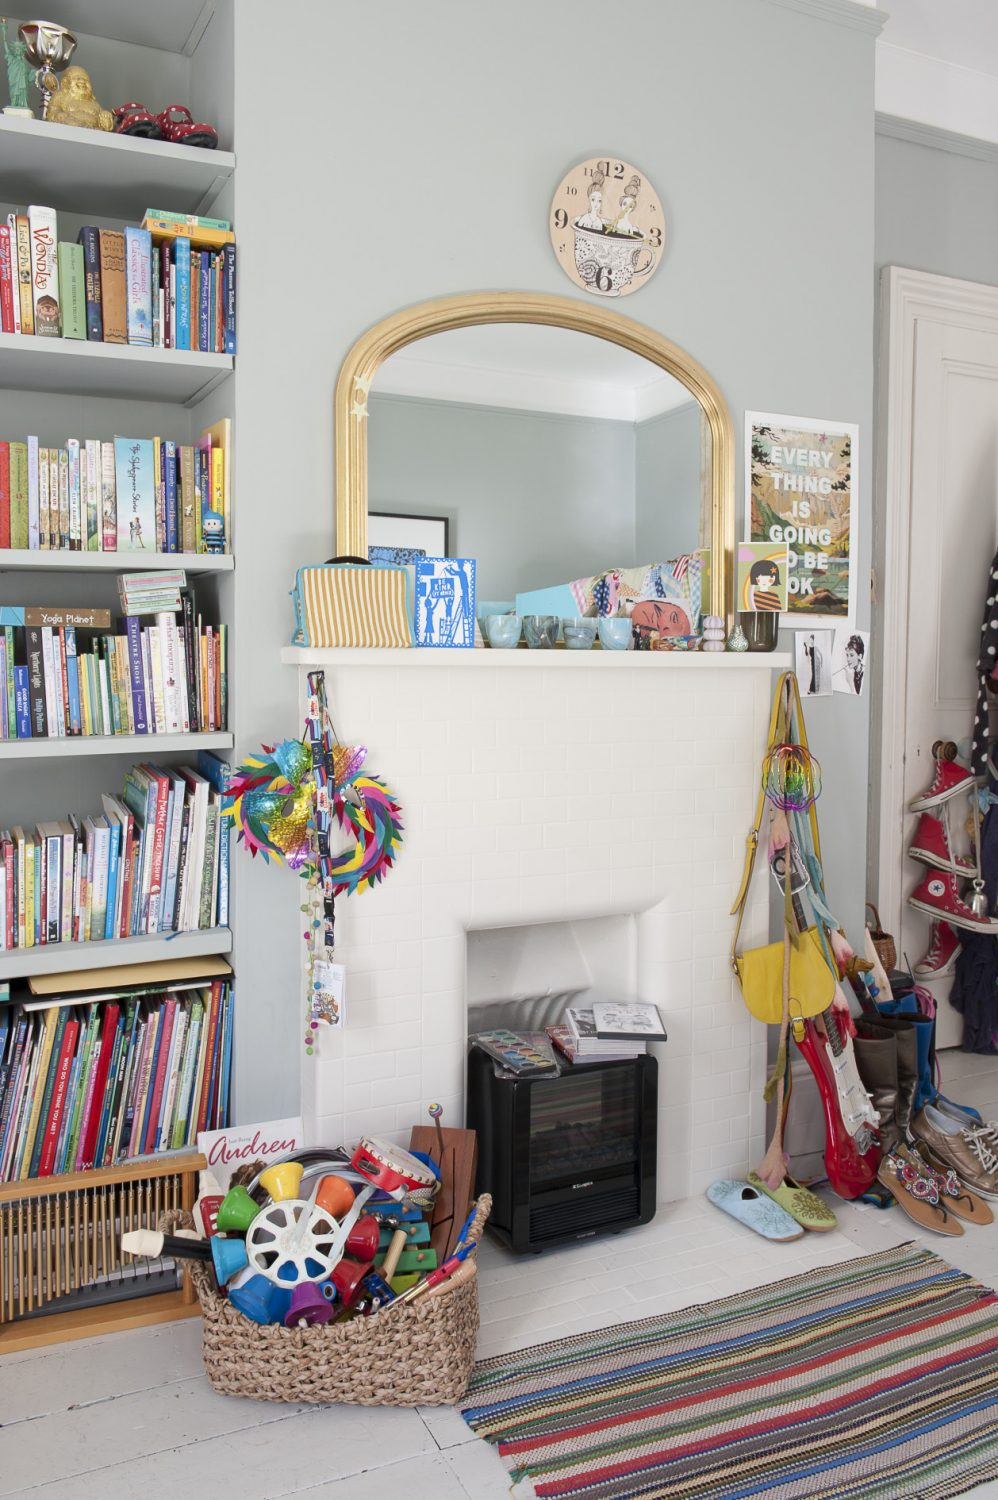 Their elder daughter's colourful room shows evidence of her love of music